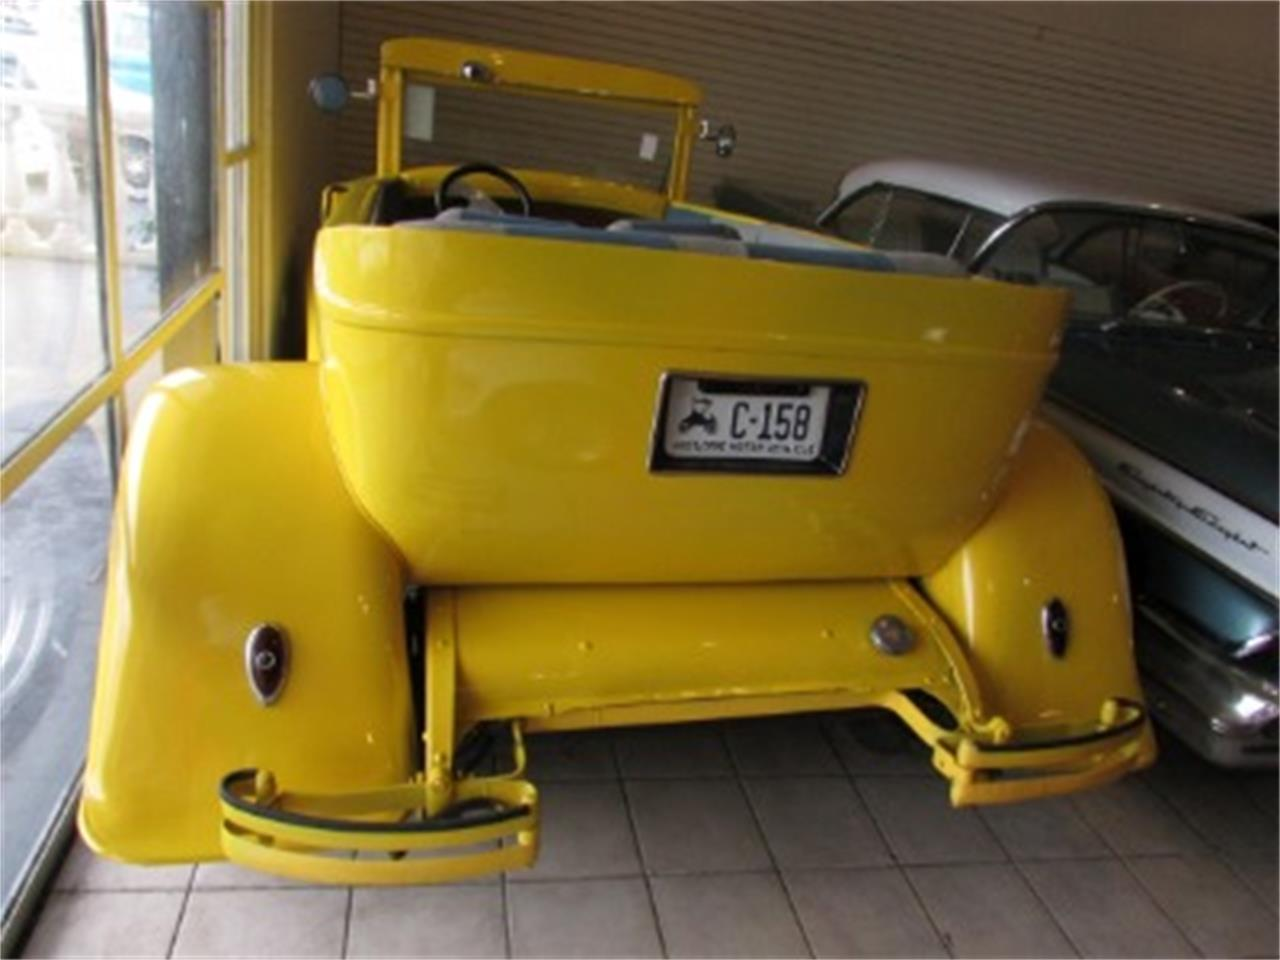 1929 Nash Roadster for sale in Miami, FL – photo 3